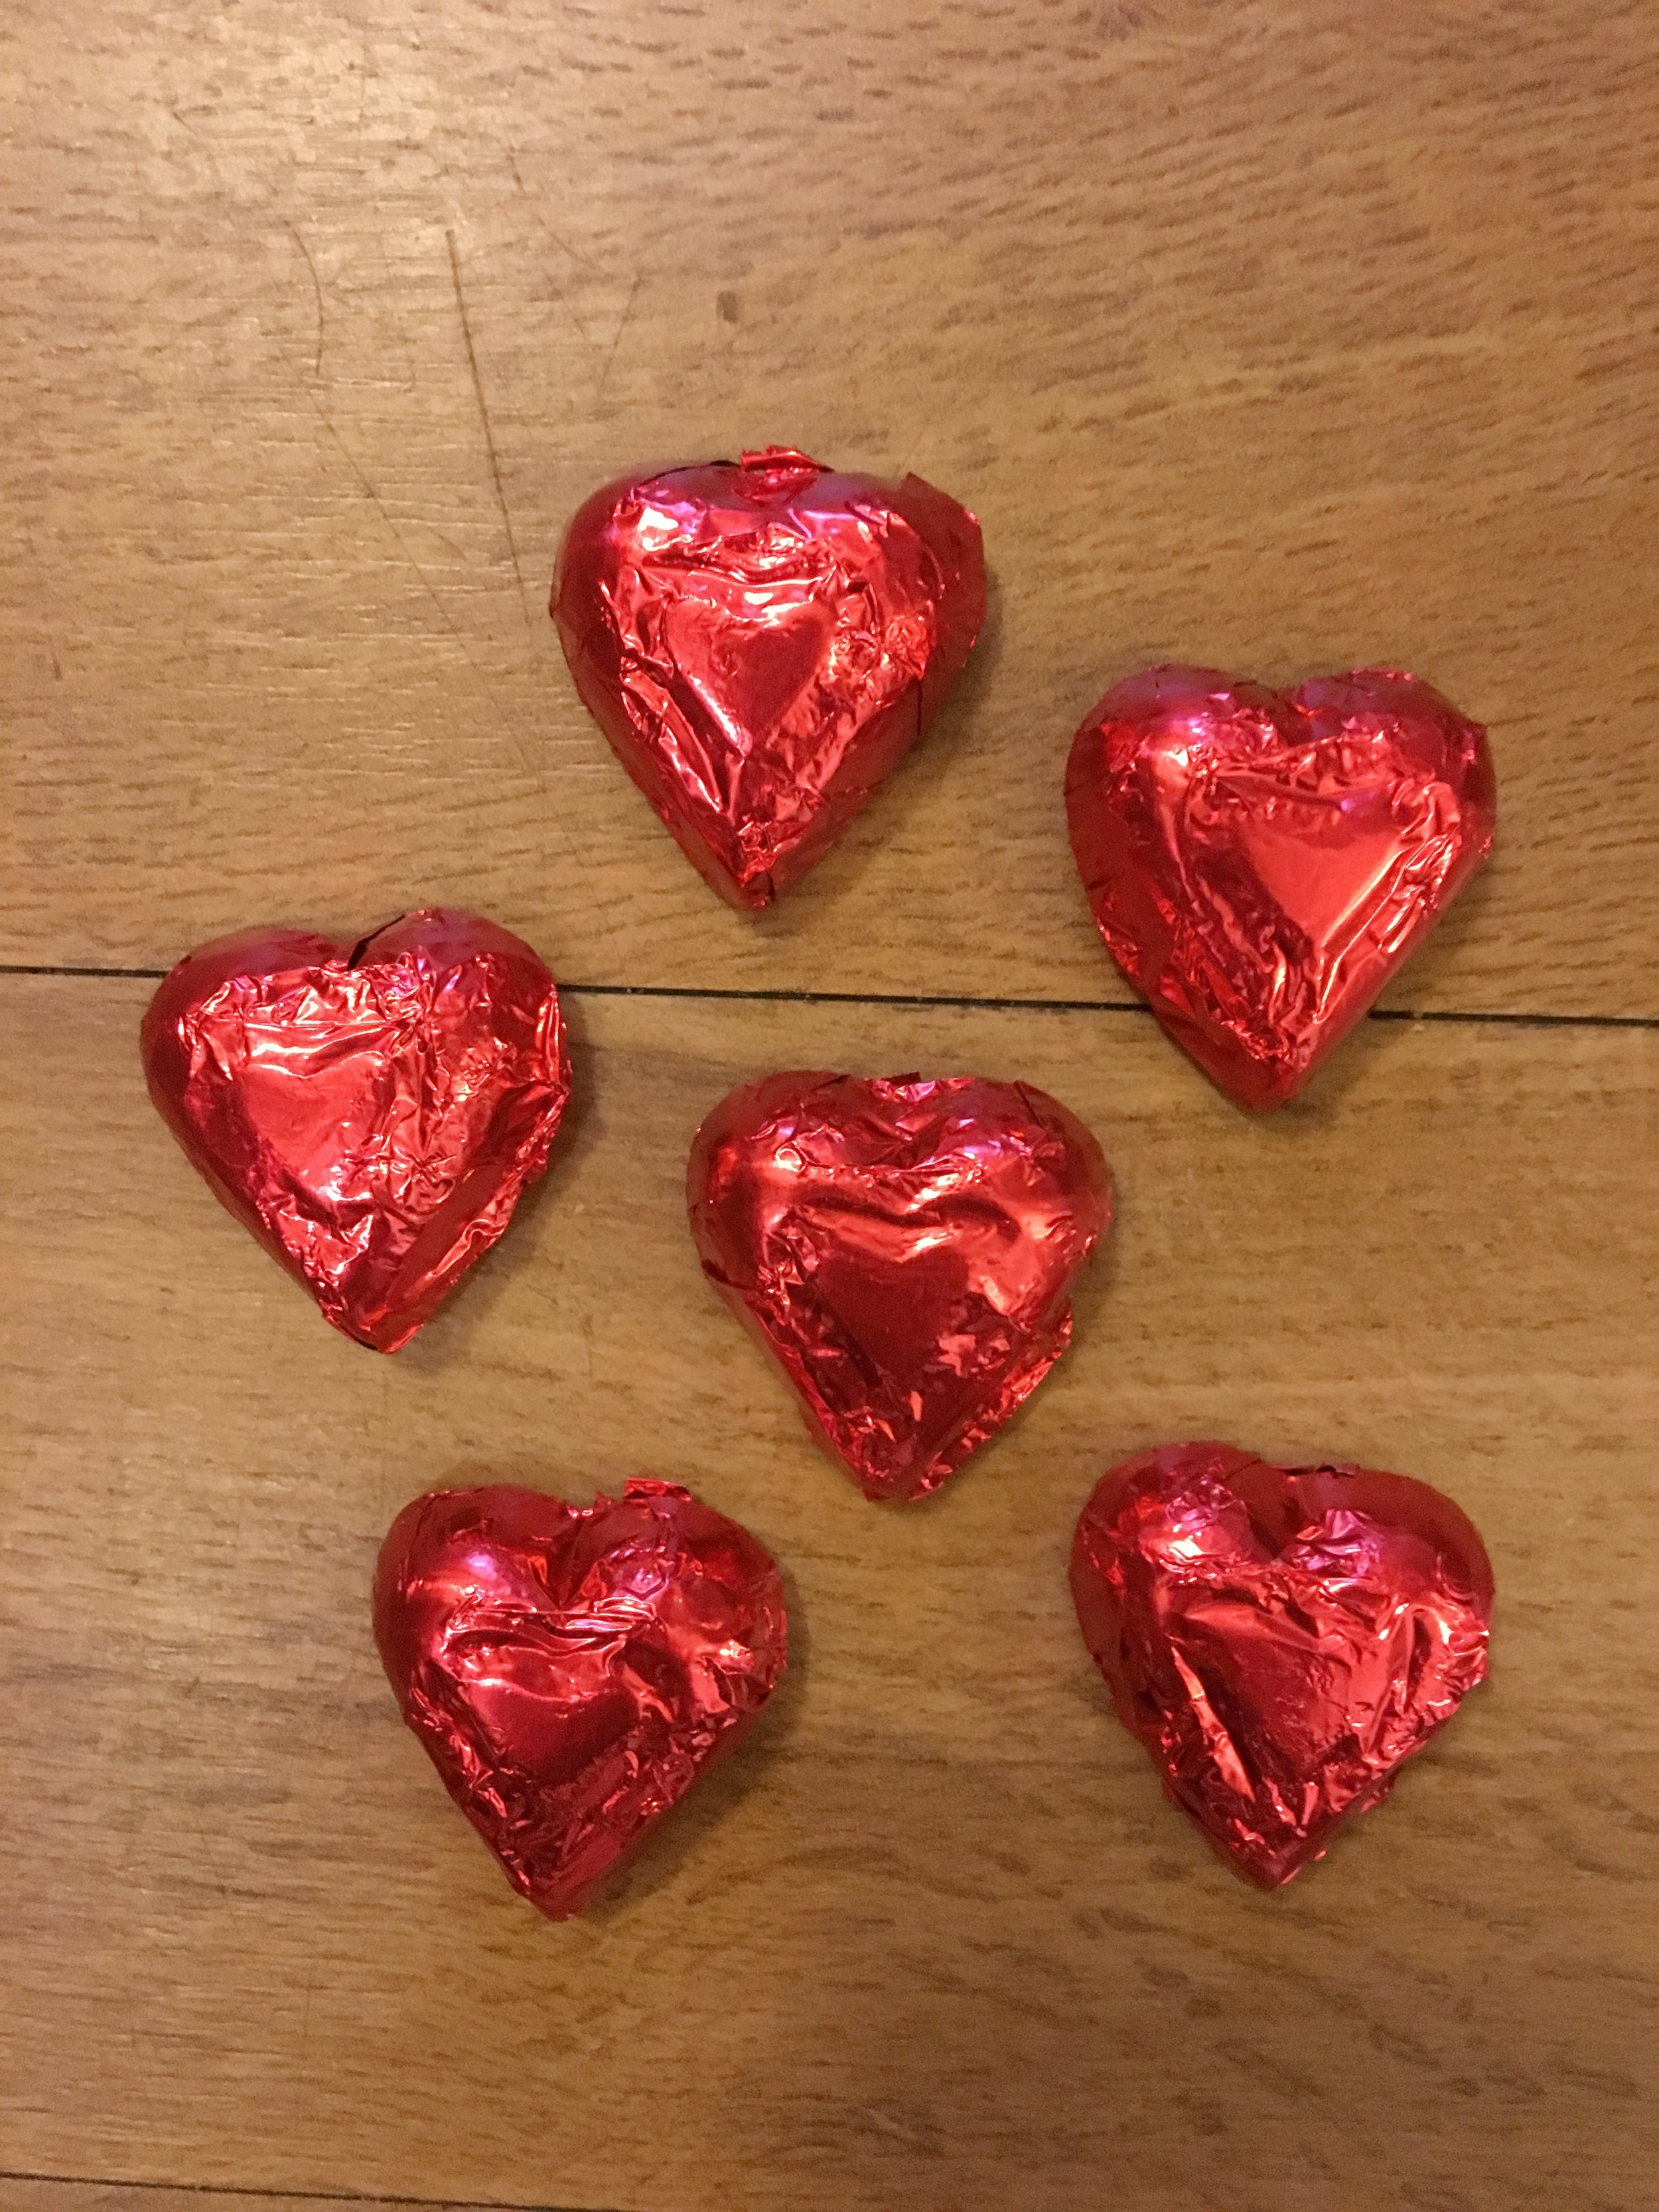 Red Hearts   Available in milk chocolate    1 lb. - $14.95 1/2 lb. - $7.50 1/4 lb. - $3.75